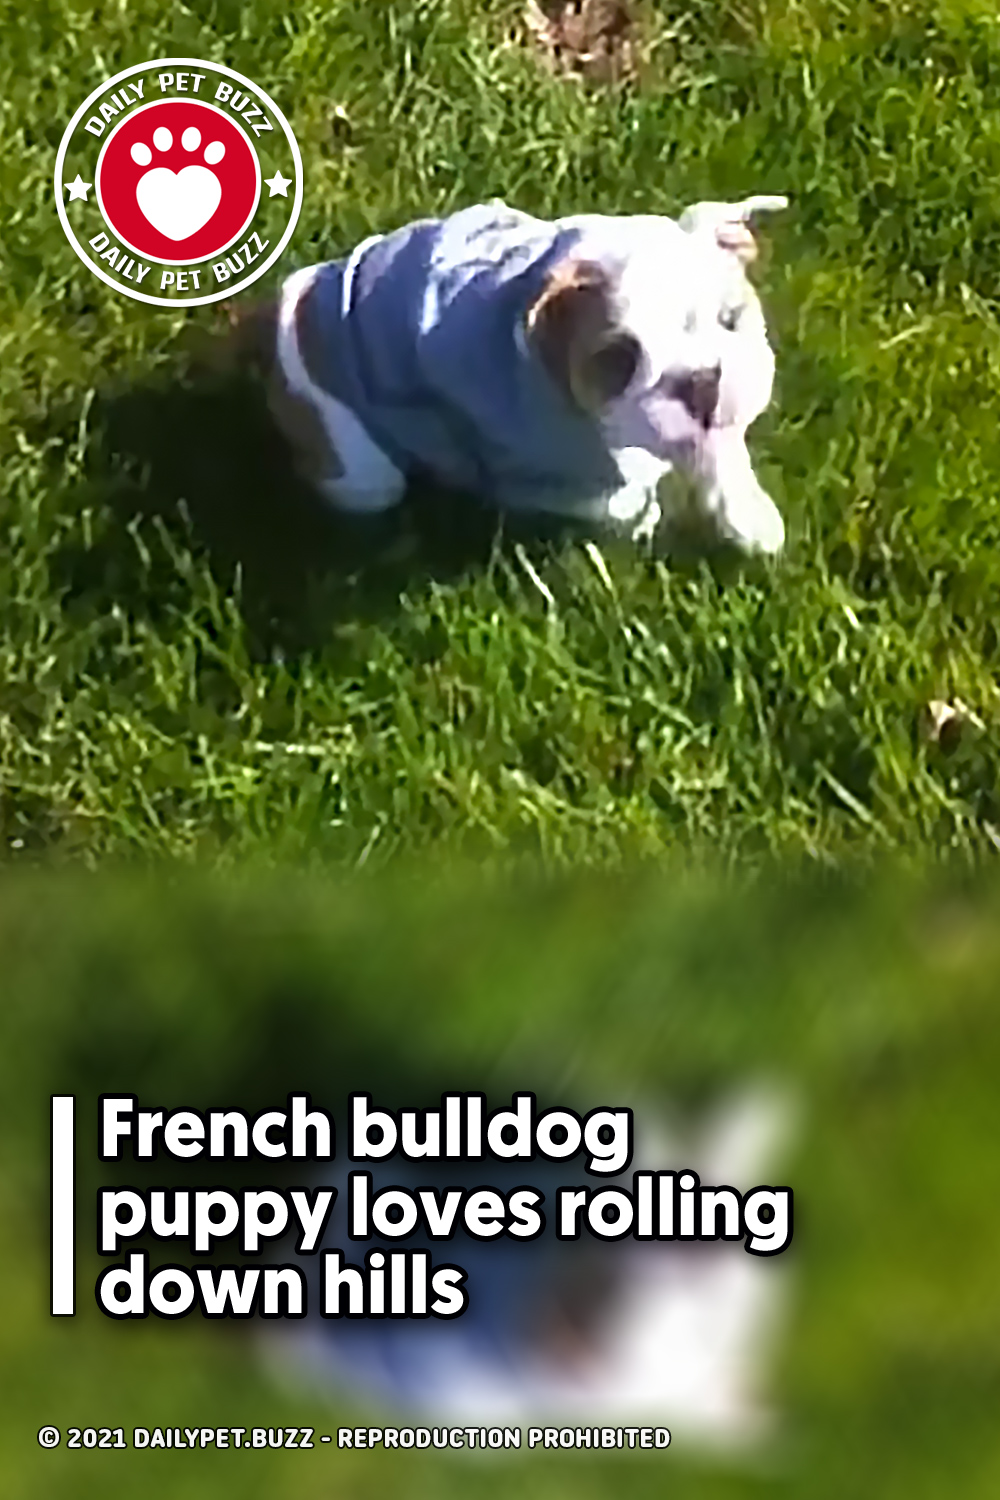 French bulldog puppy loves rolling down hills